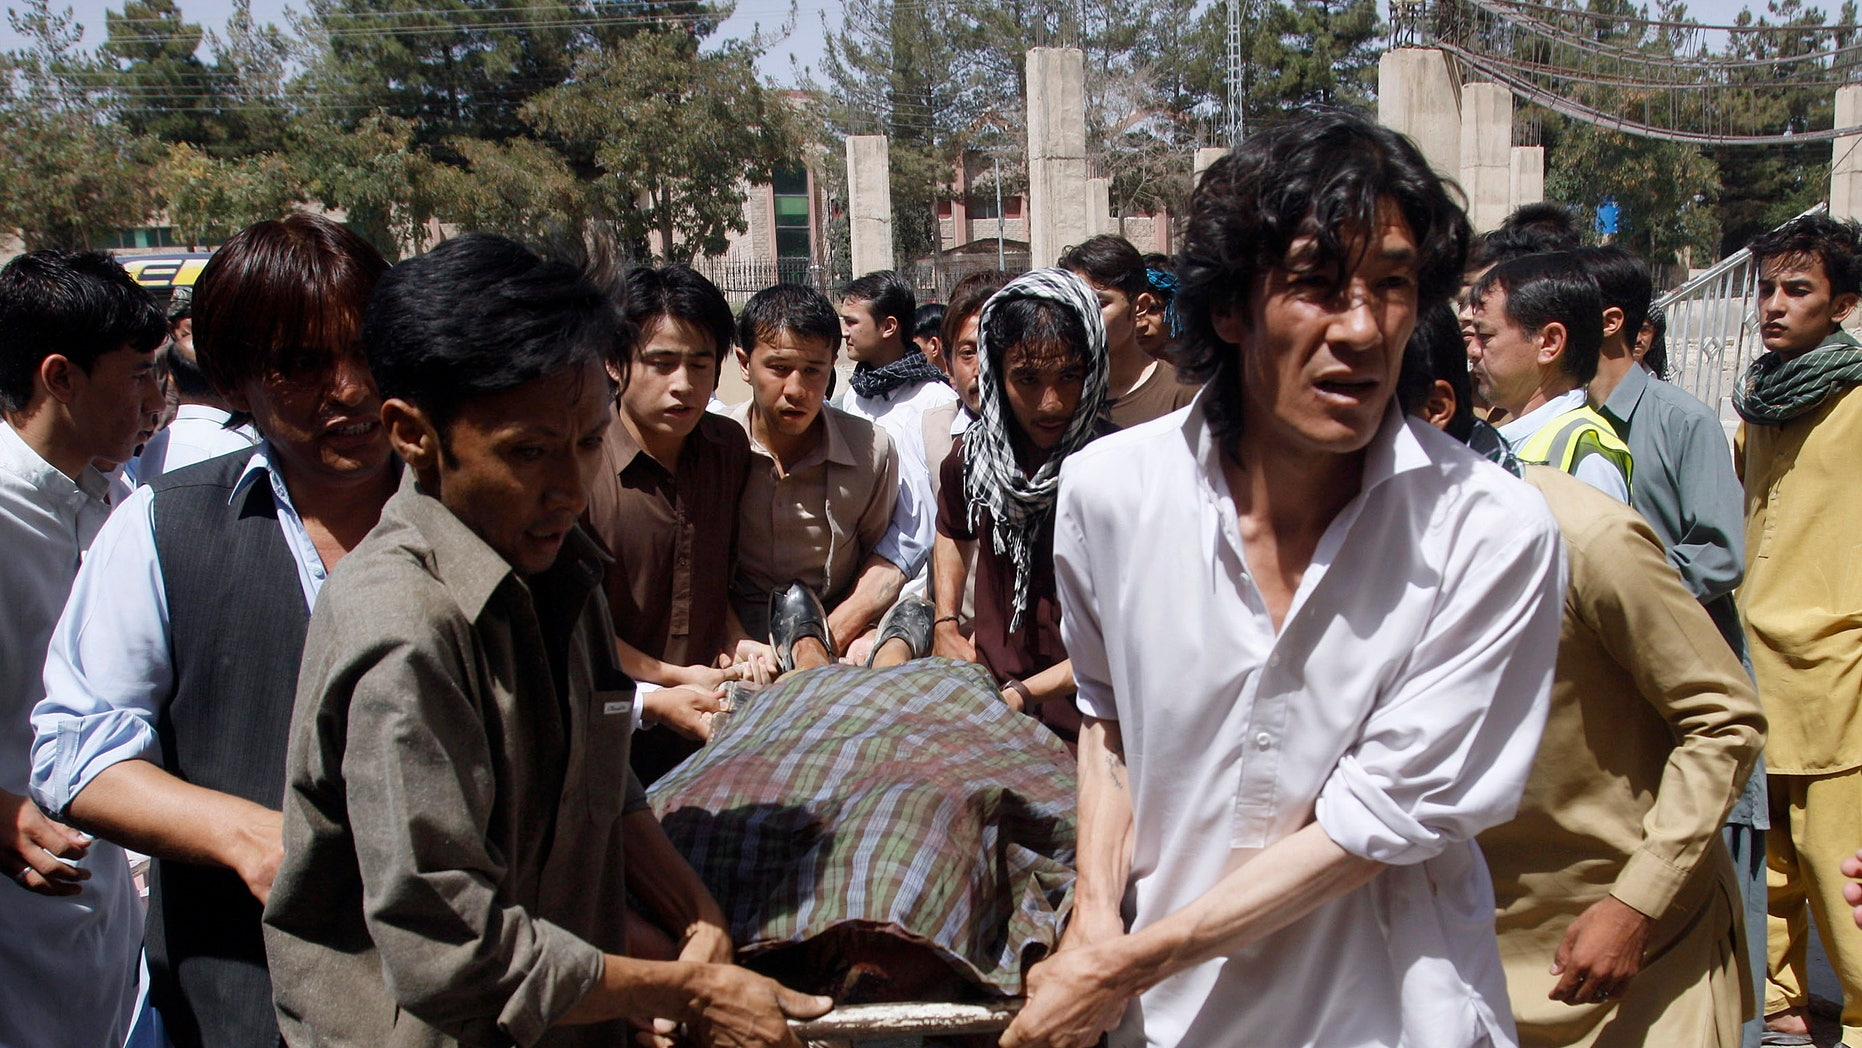 Pakistani Shiite Muslims carry the body of a person killed by gunmen at a local hospital in Quetta, Pakistan on Saturday, Sept. 1, 2012. A group of gunmen on motorcycles in the southwestern province of Baluchistan killed several Shiite Muslims, as violence against the minority sect continues to escalate. (AP Photo/Arshad Butt)